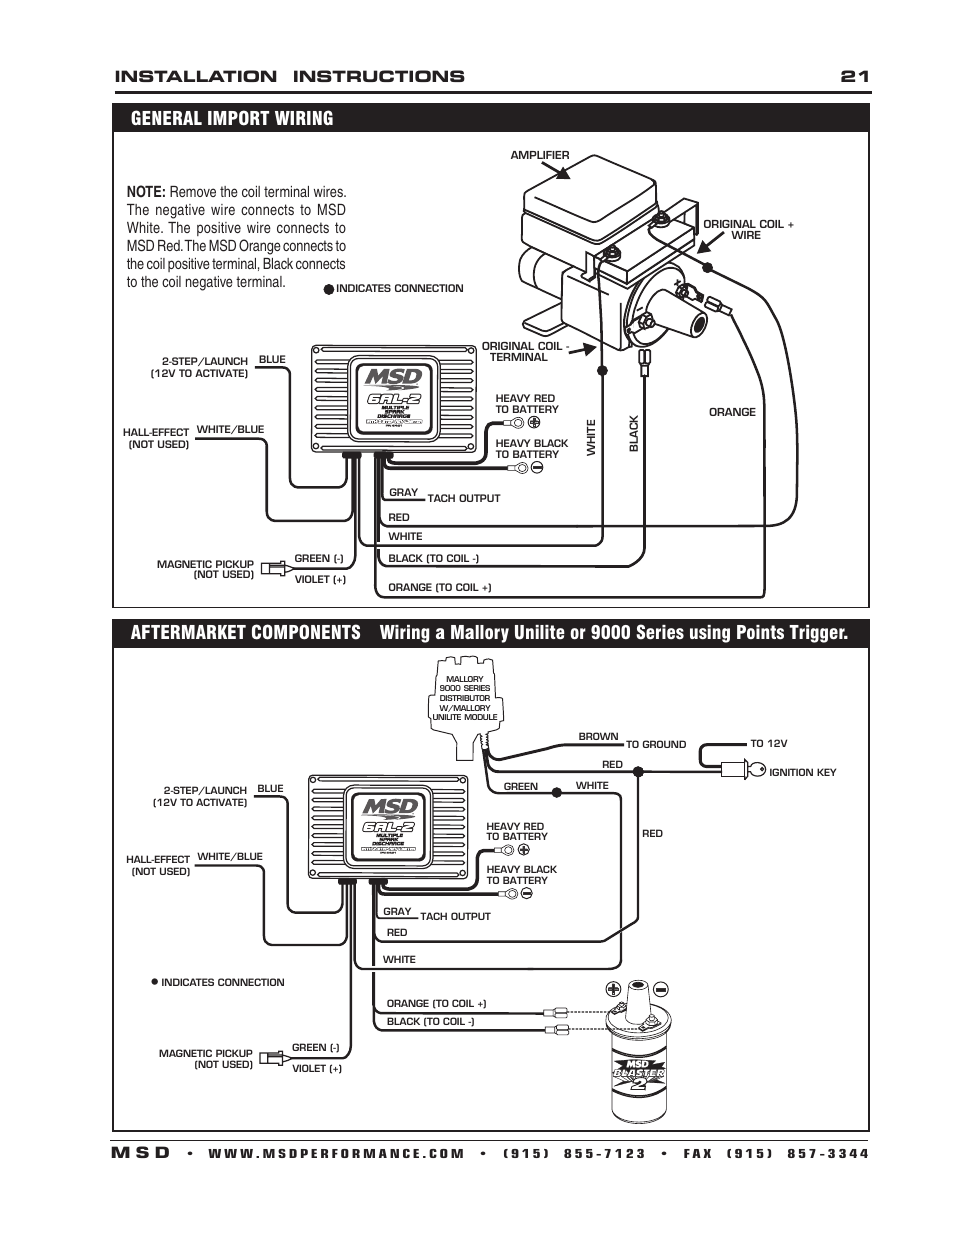 msd 6421 6al 2 ignition control installation page21?resize\\\=665%2C861 diagrams 547353 mallory unilite distributor wiring diagram mallory unilite distributor wiring diagram at bakdesigns.co